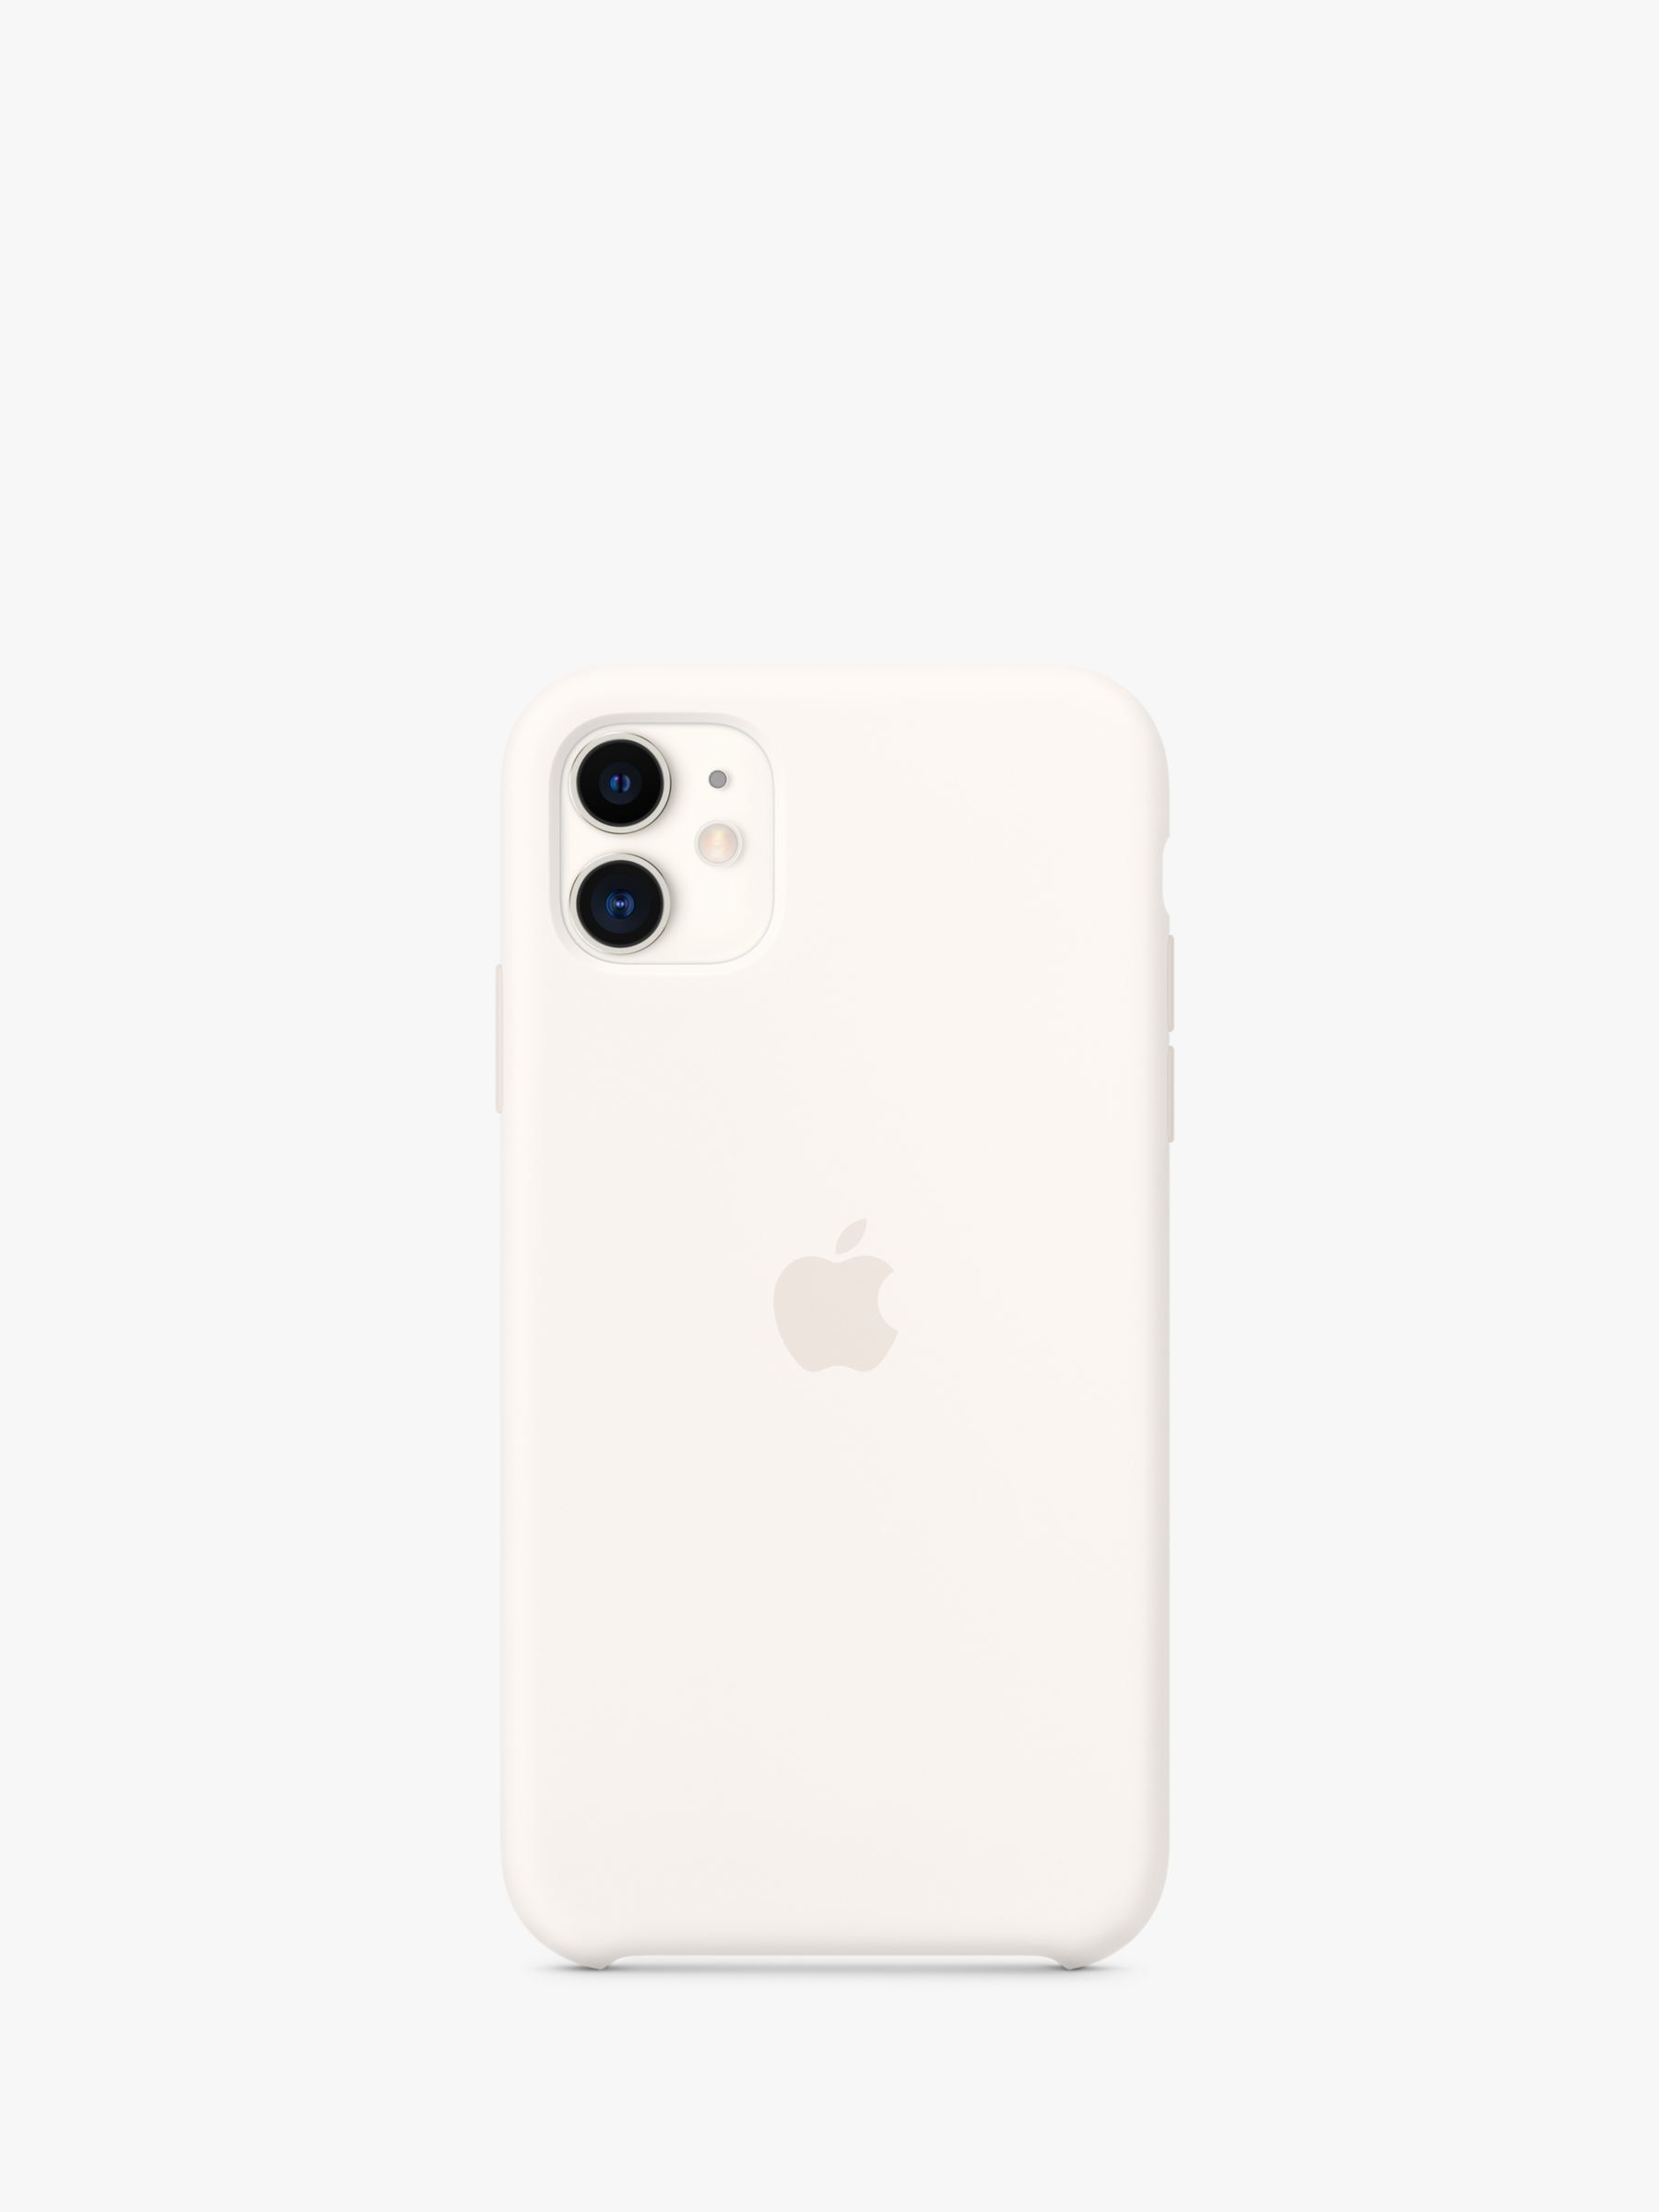 Apple silicone case for iphone 11 white in 2020 iphone